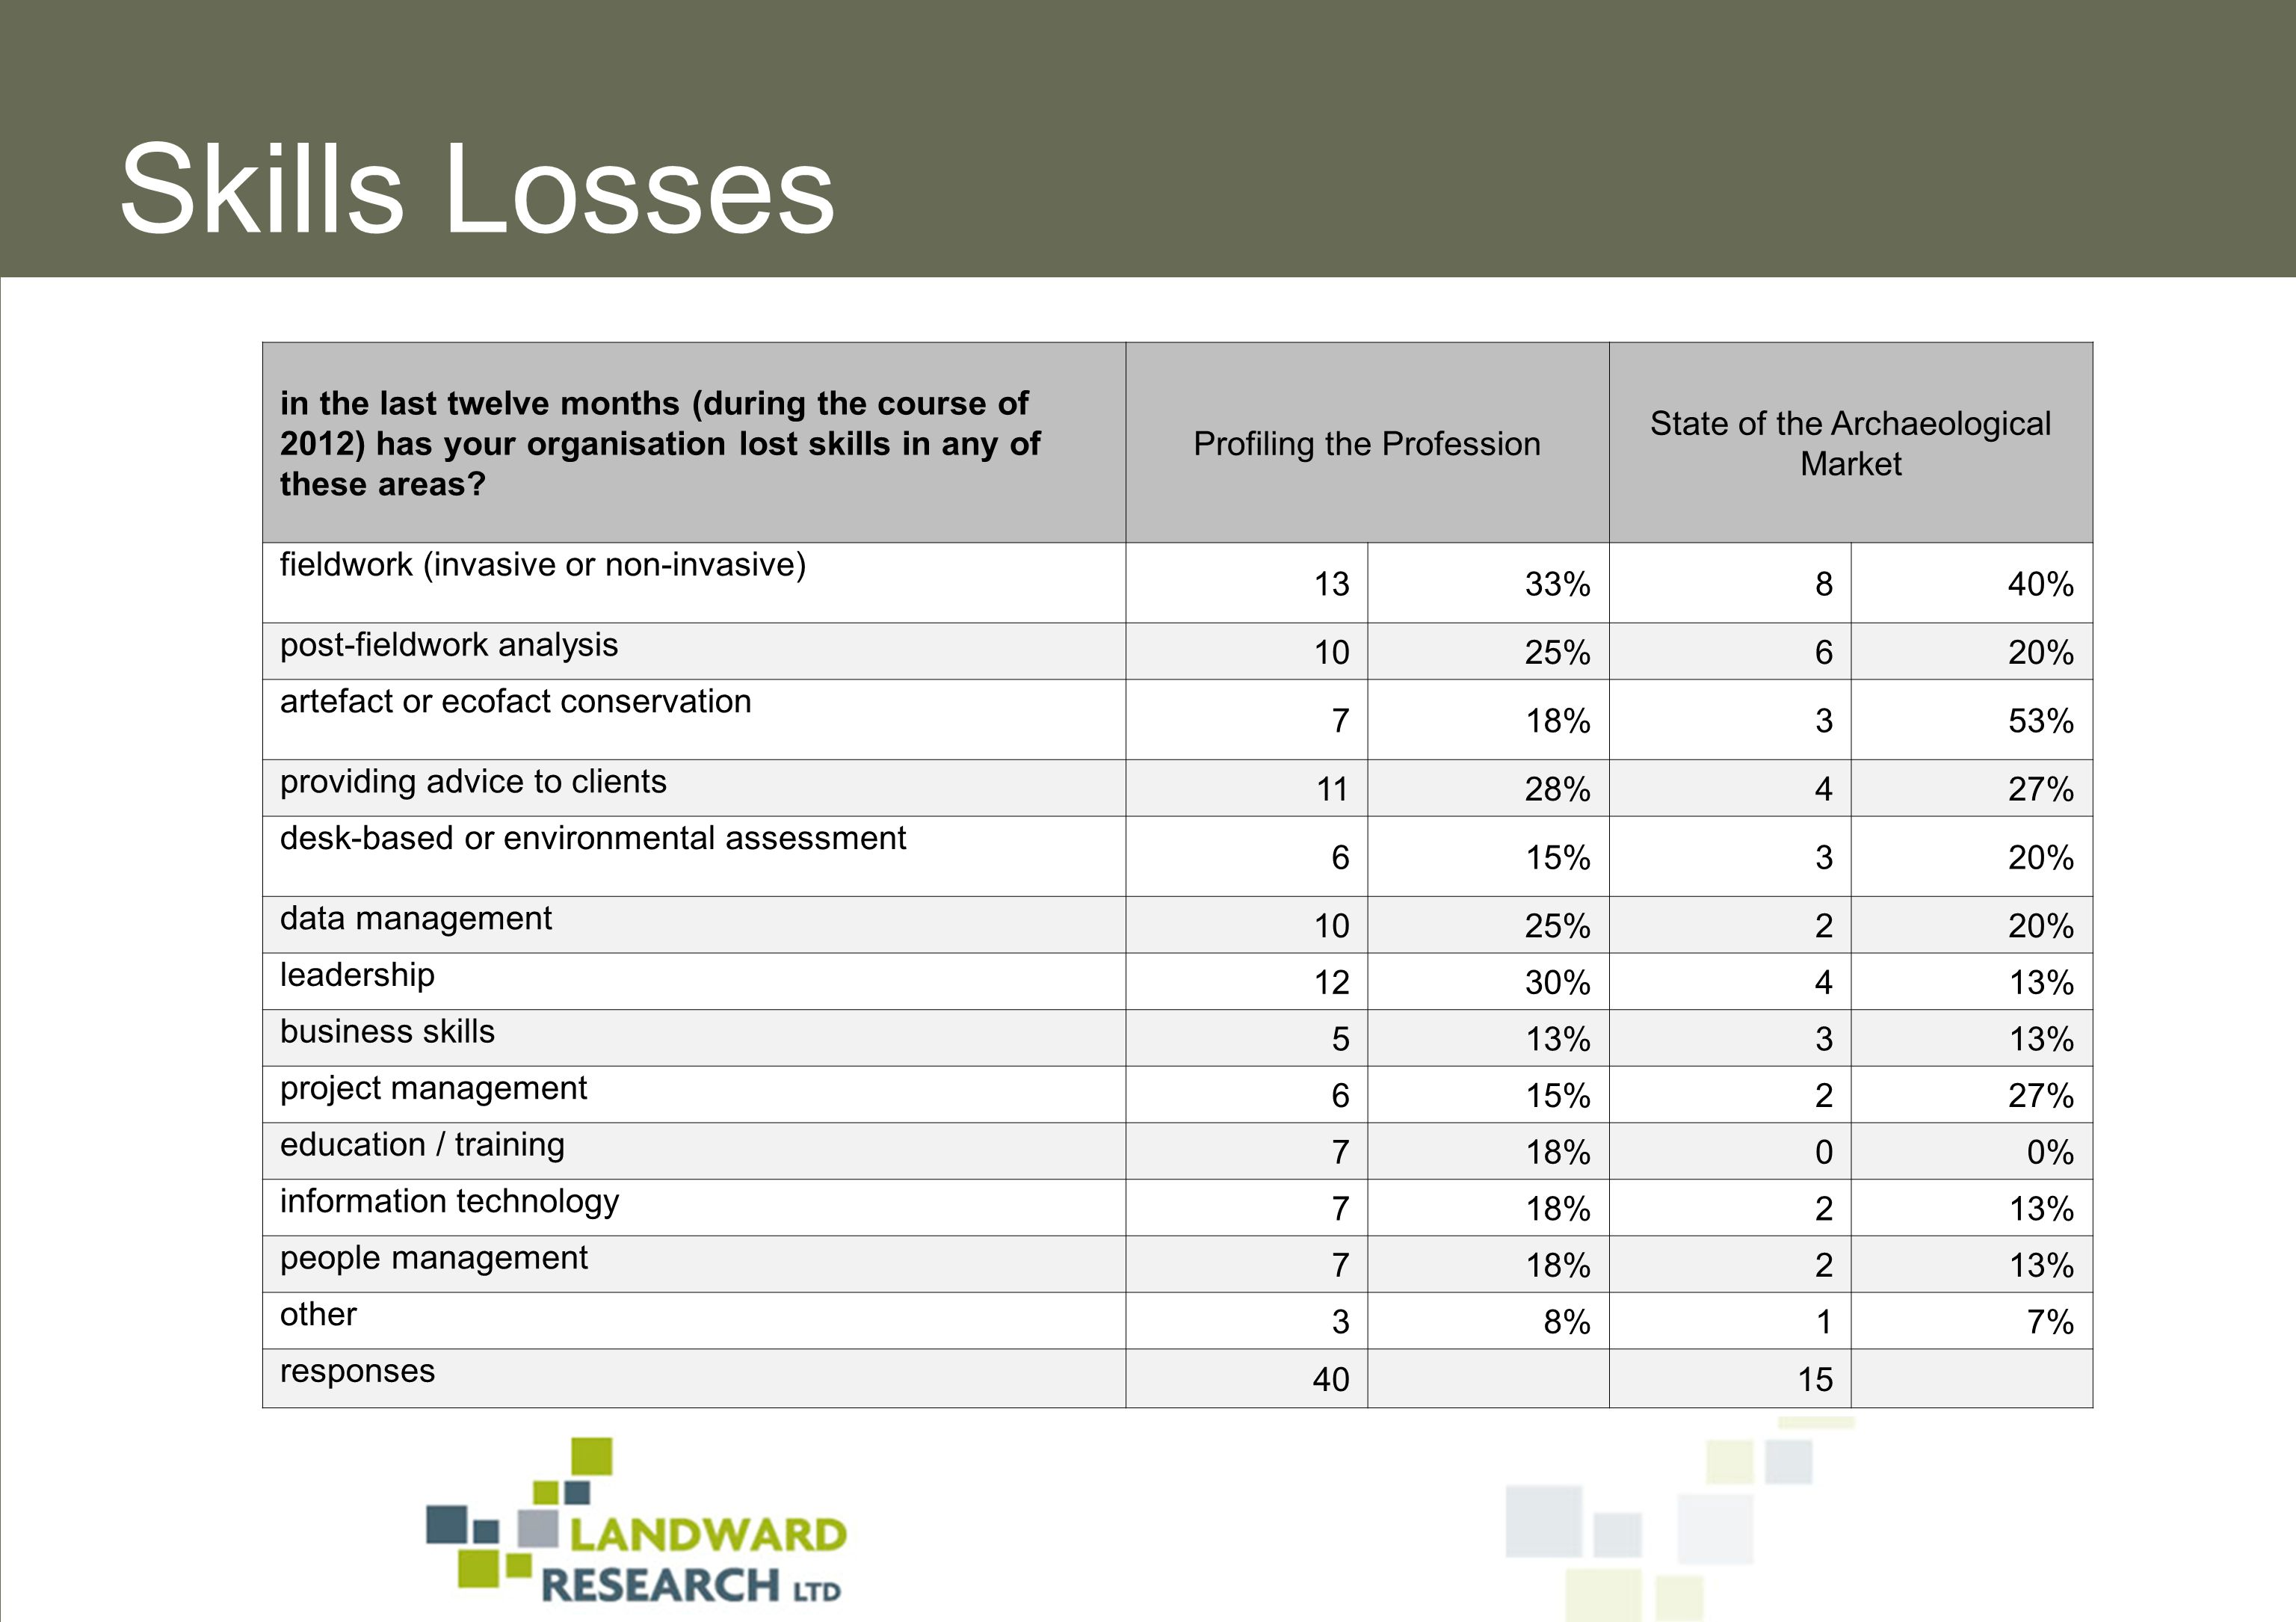 in the last twelve months (during the course of 2012) has your organisation lost skills in any of these areas.